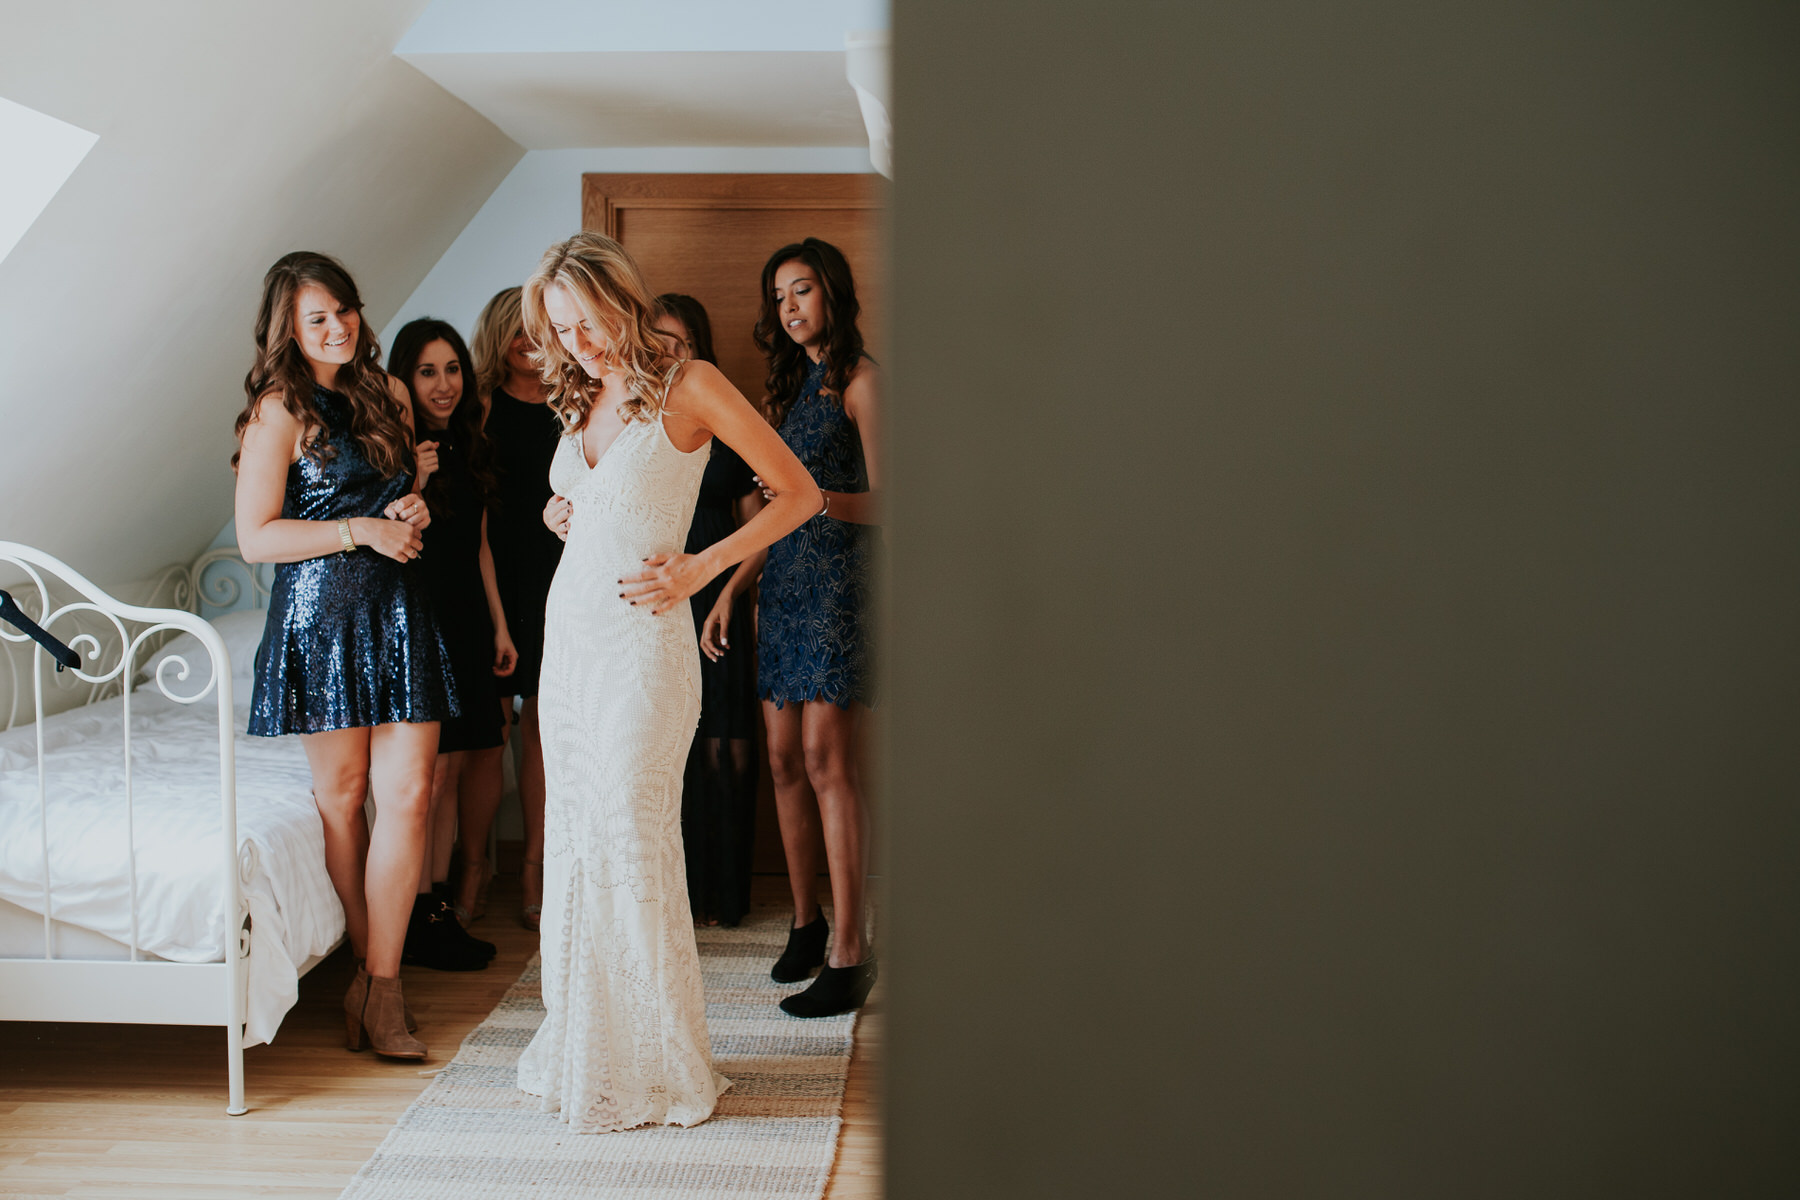 7 bride puts on cream crocheted wedding dress bridesmaids watching.jpg